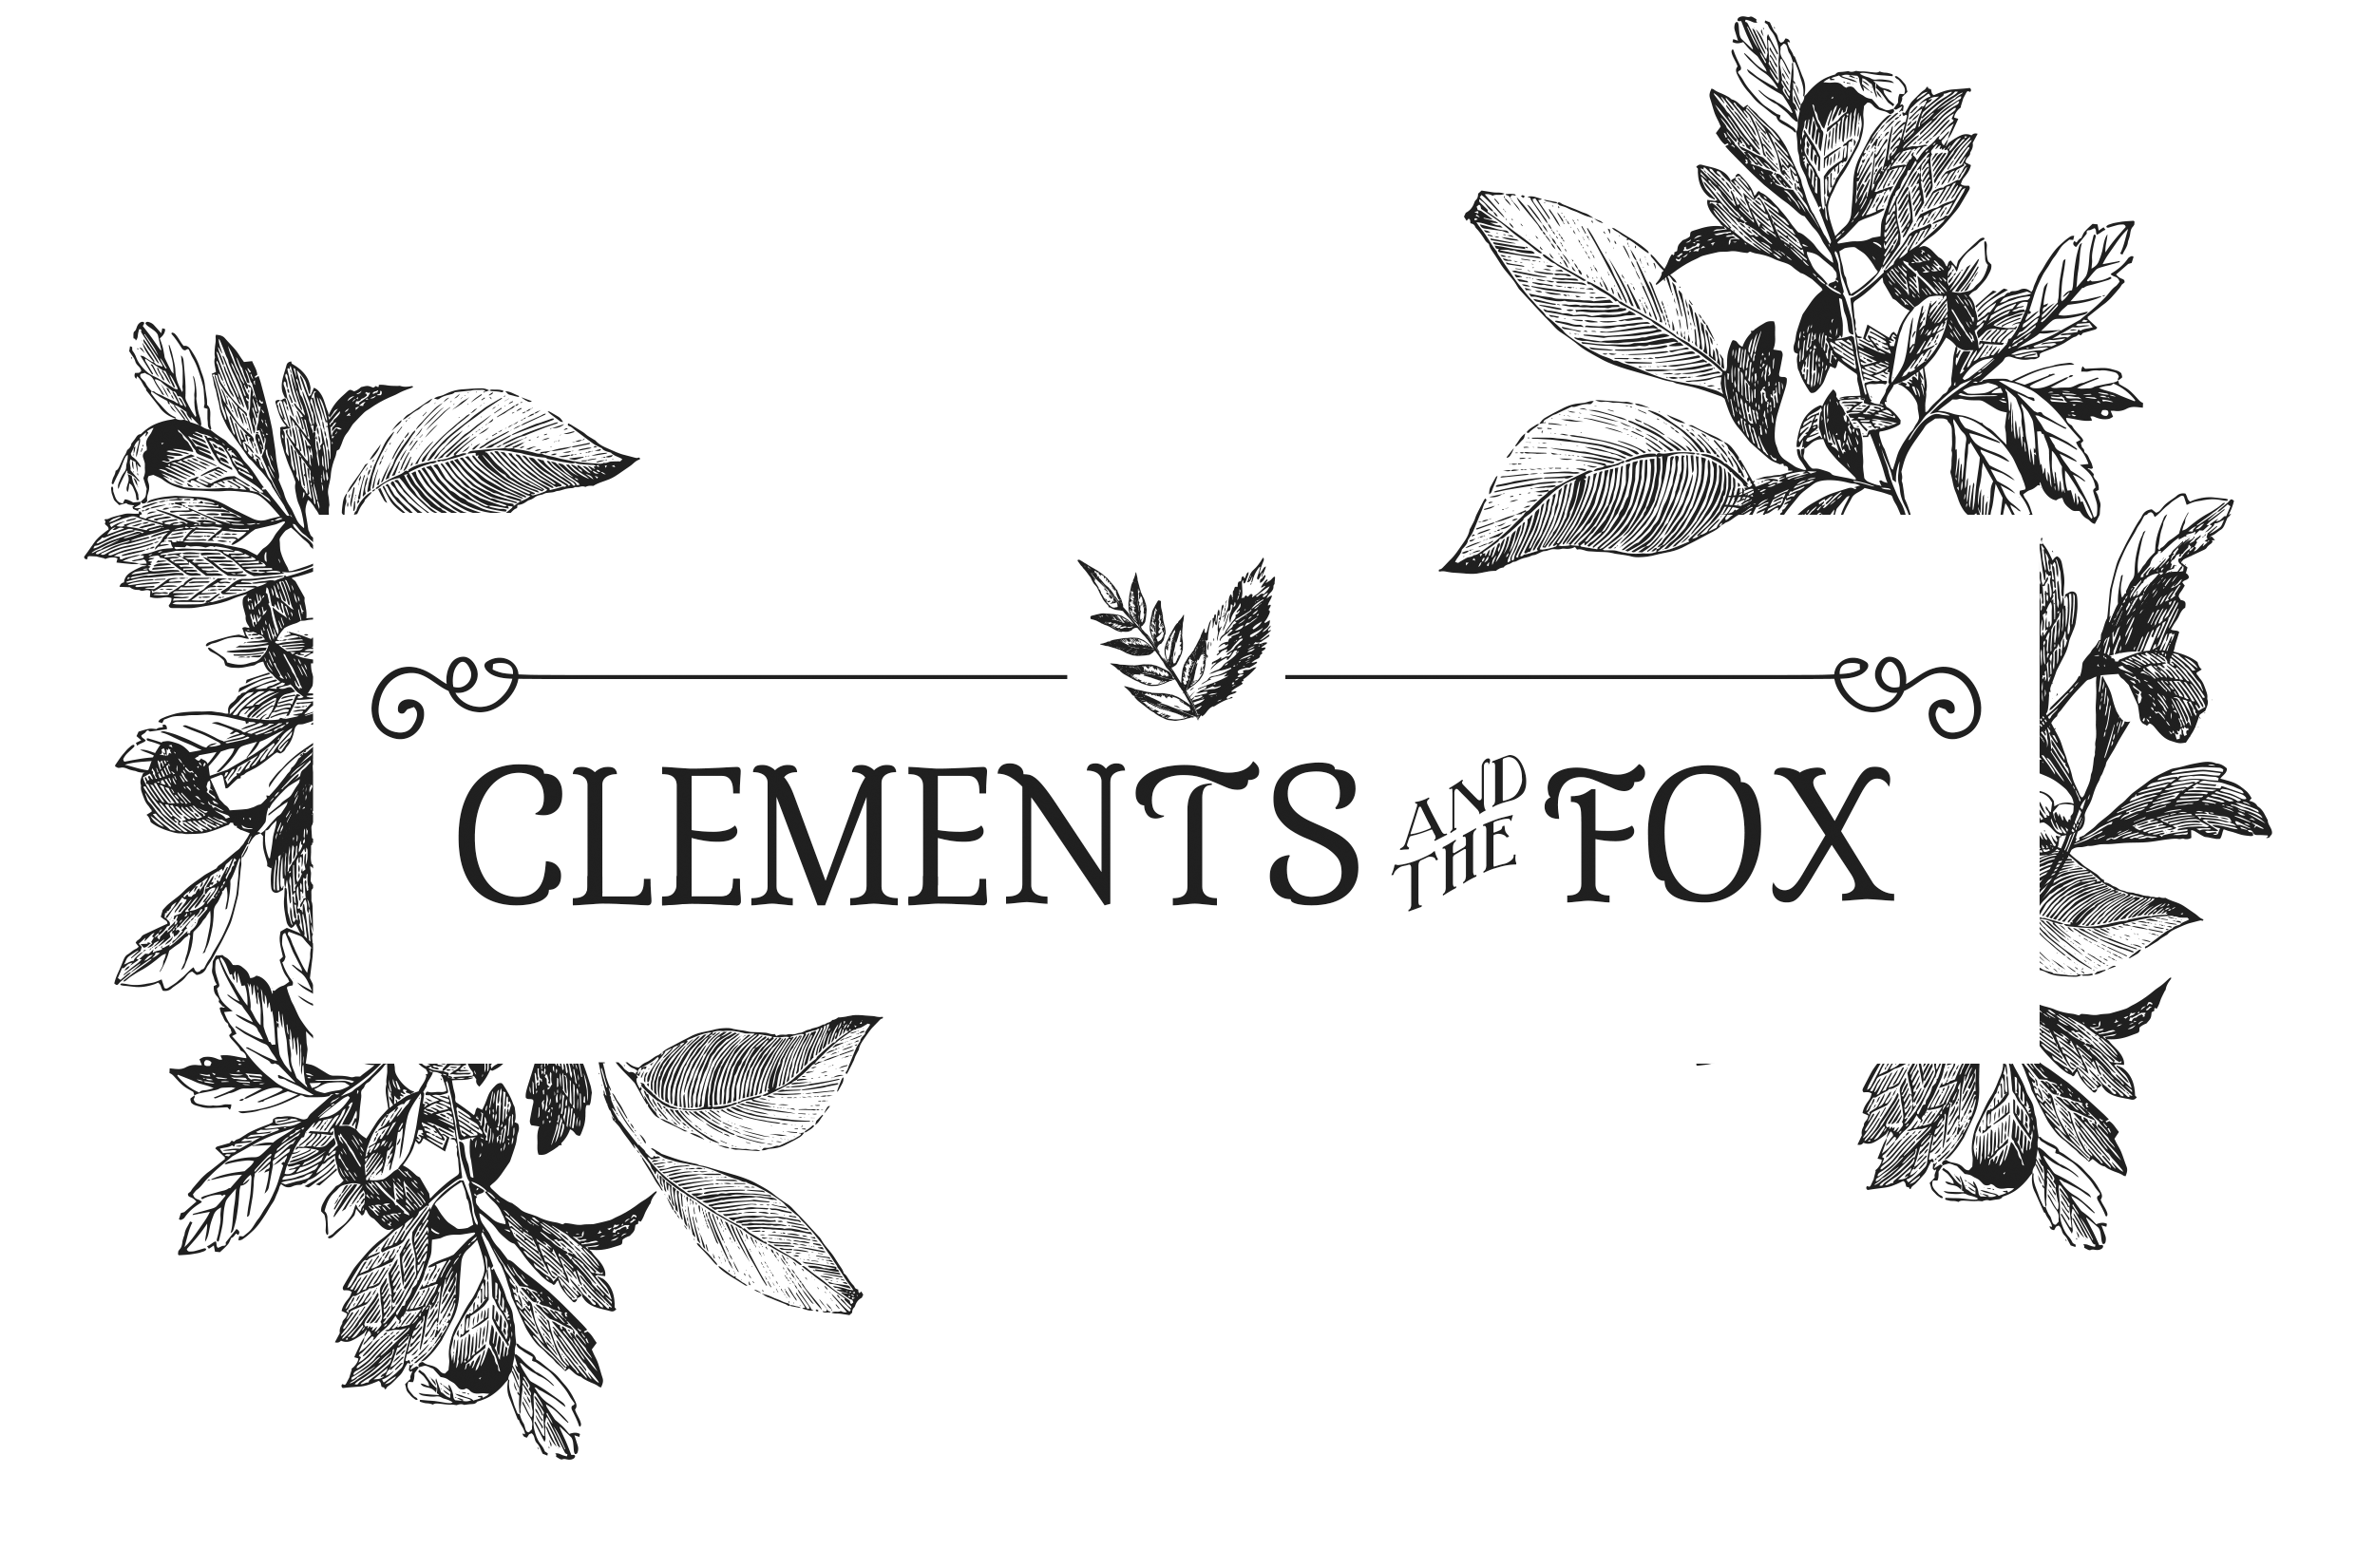 Clements and the Fox